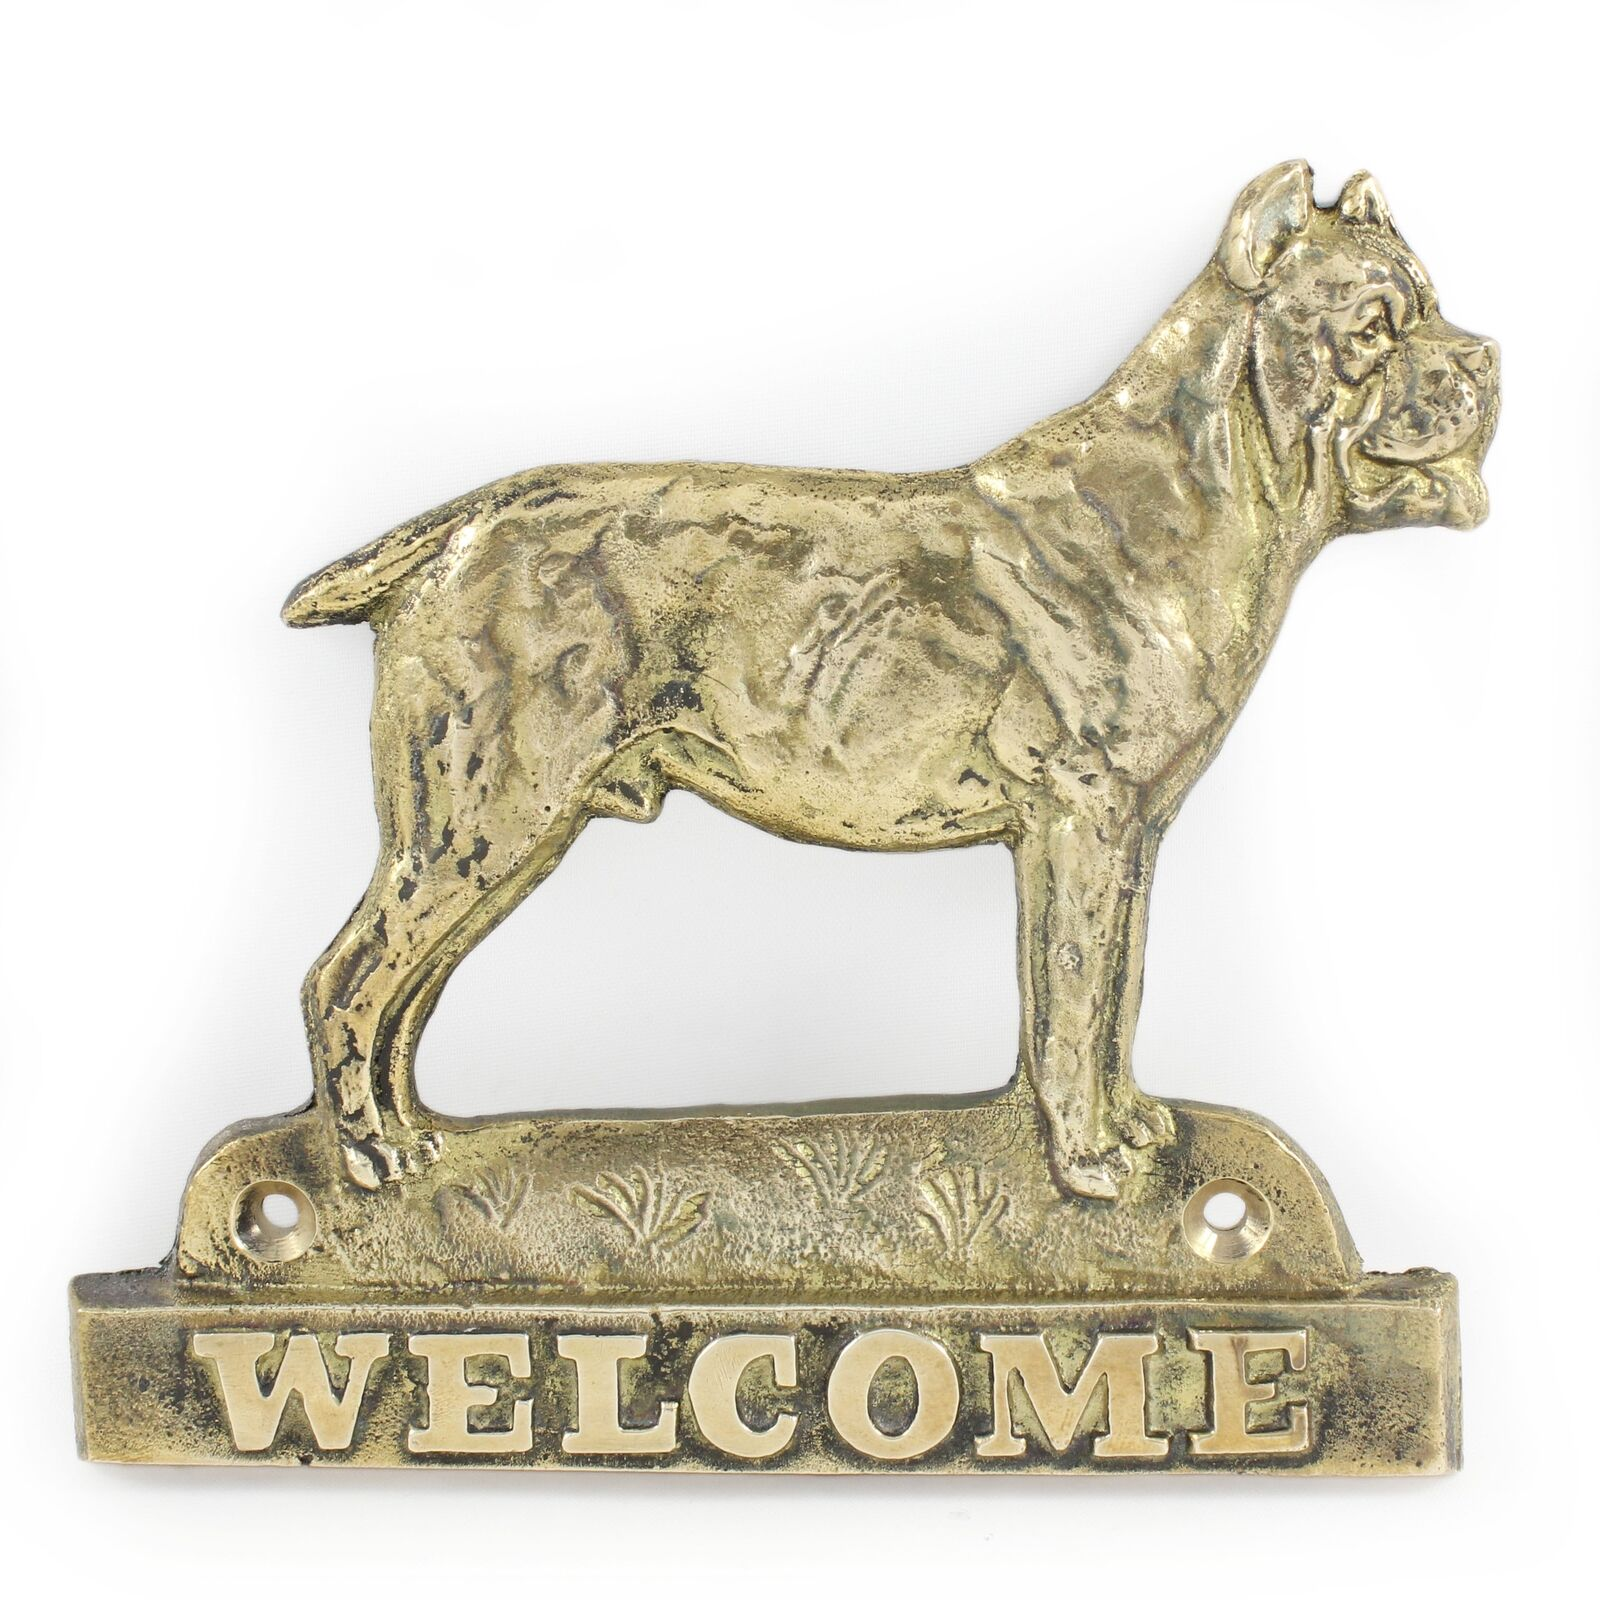 Cane Corso - brass tablet with image of a dog, Art Dog